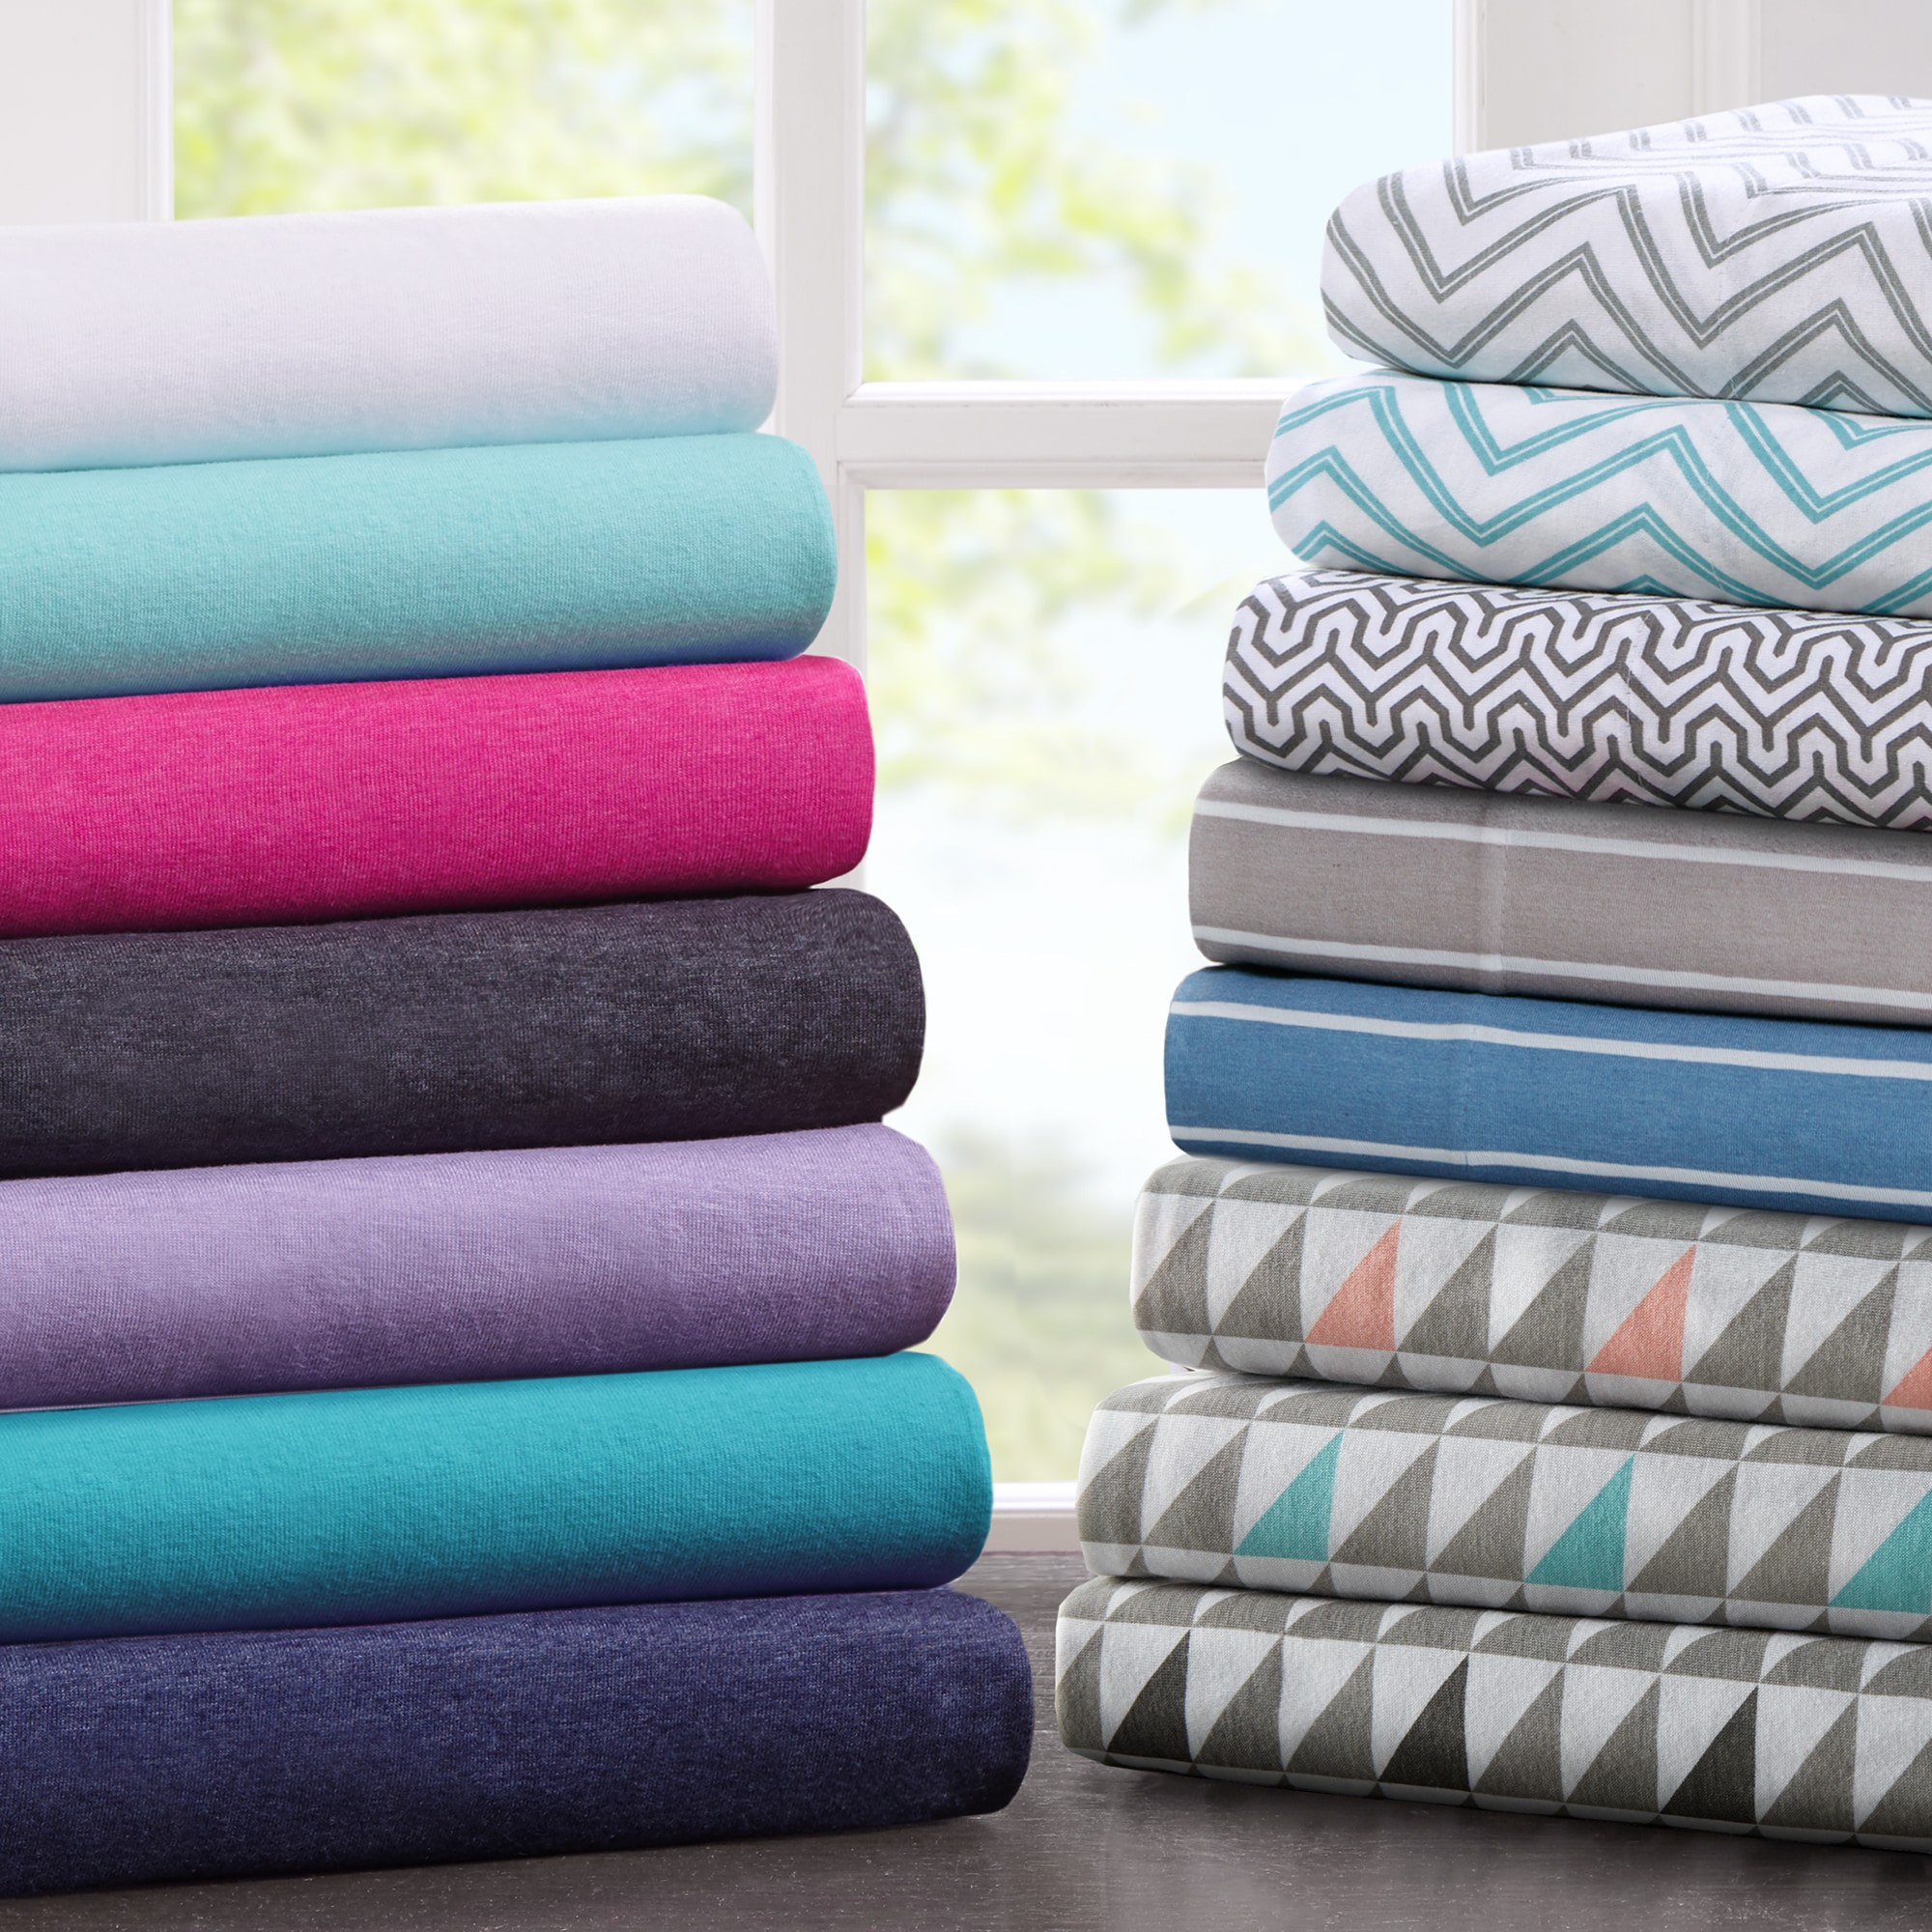 Intelligent Design Cotton Blend Jersey Knit Sheet Set (Qu...